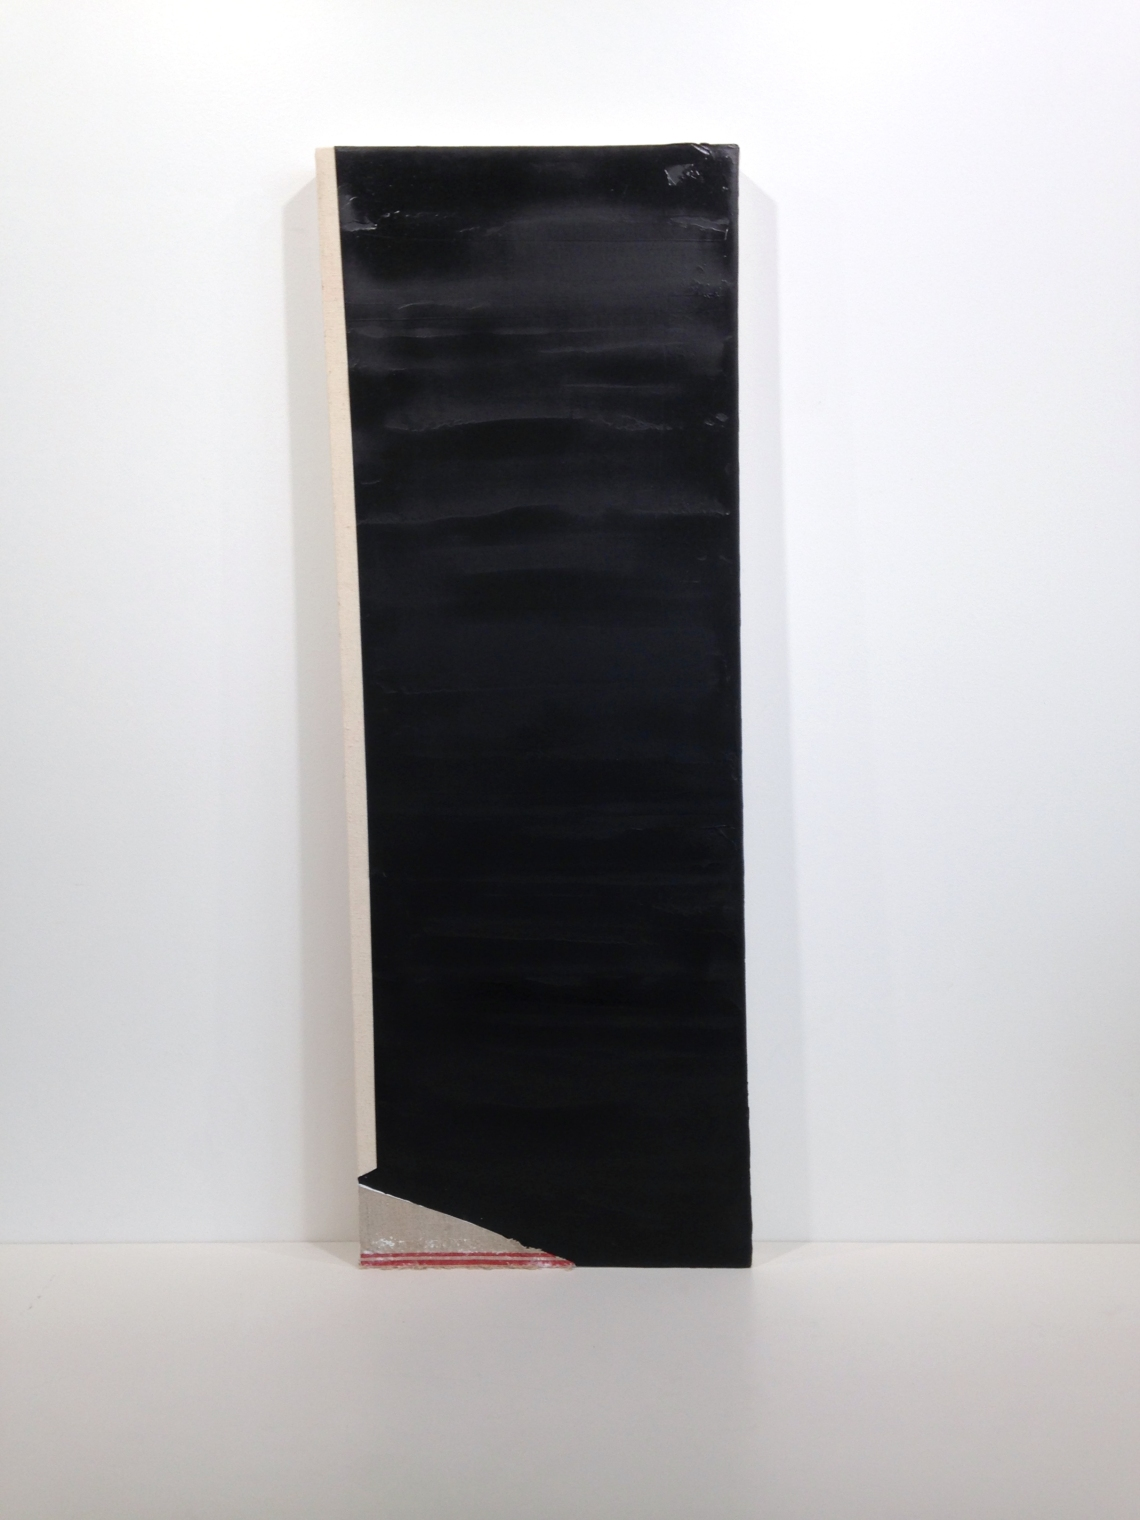 Monolith. Oil, pencil and linen on canvas, 2015.